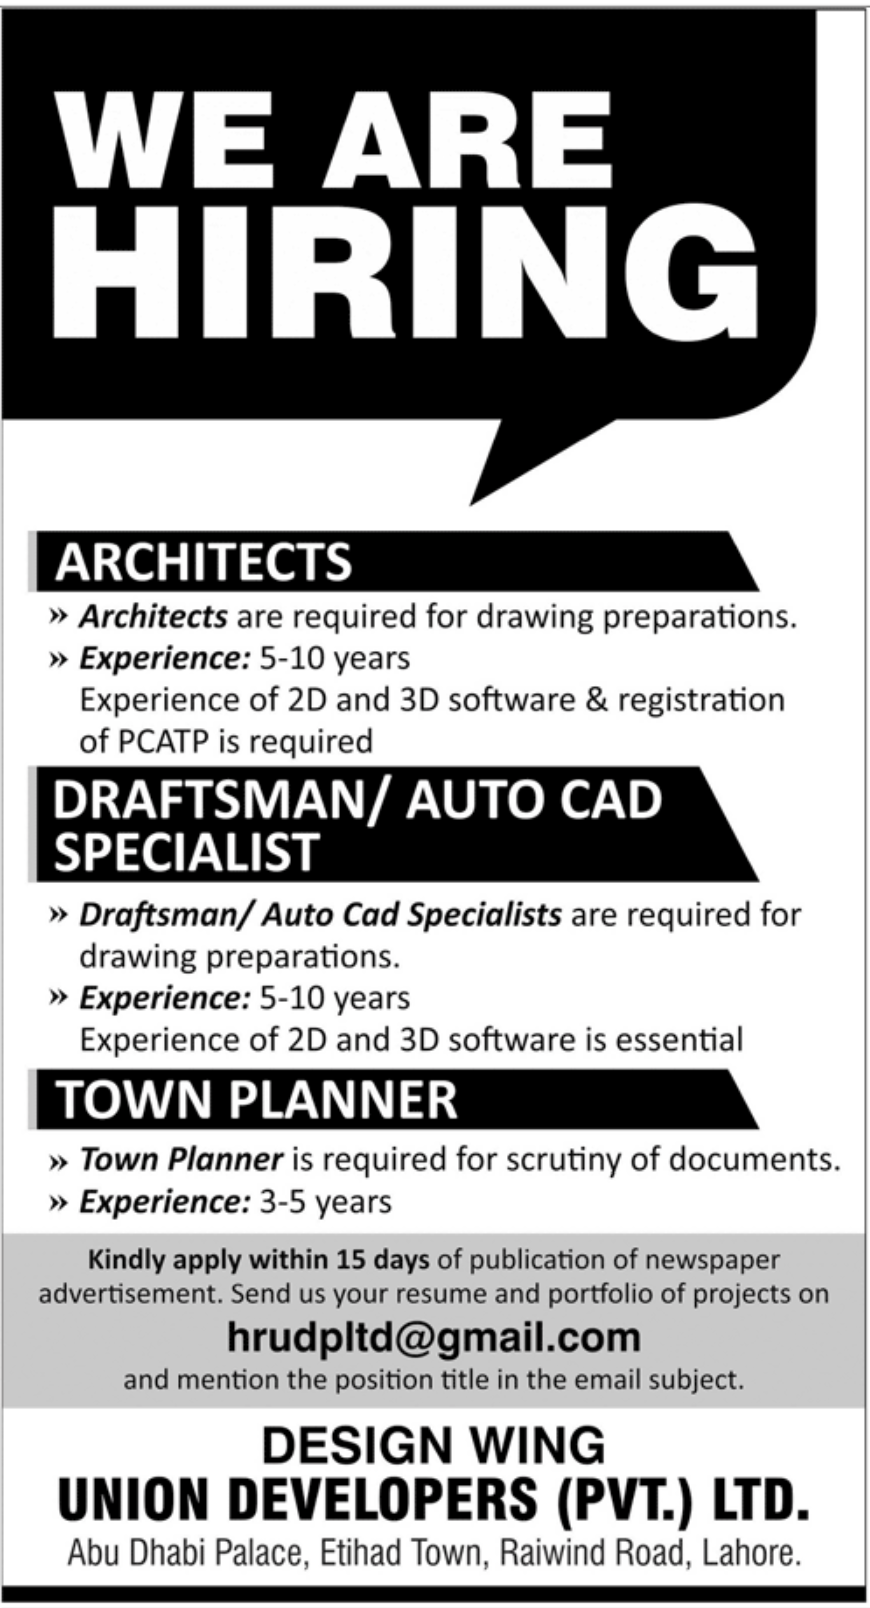 Union Developers Pvt Ltd Jobs October 2020